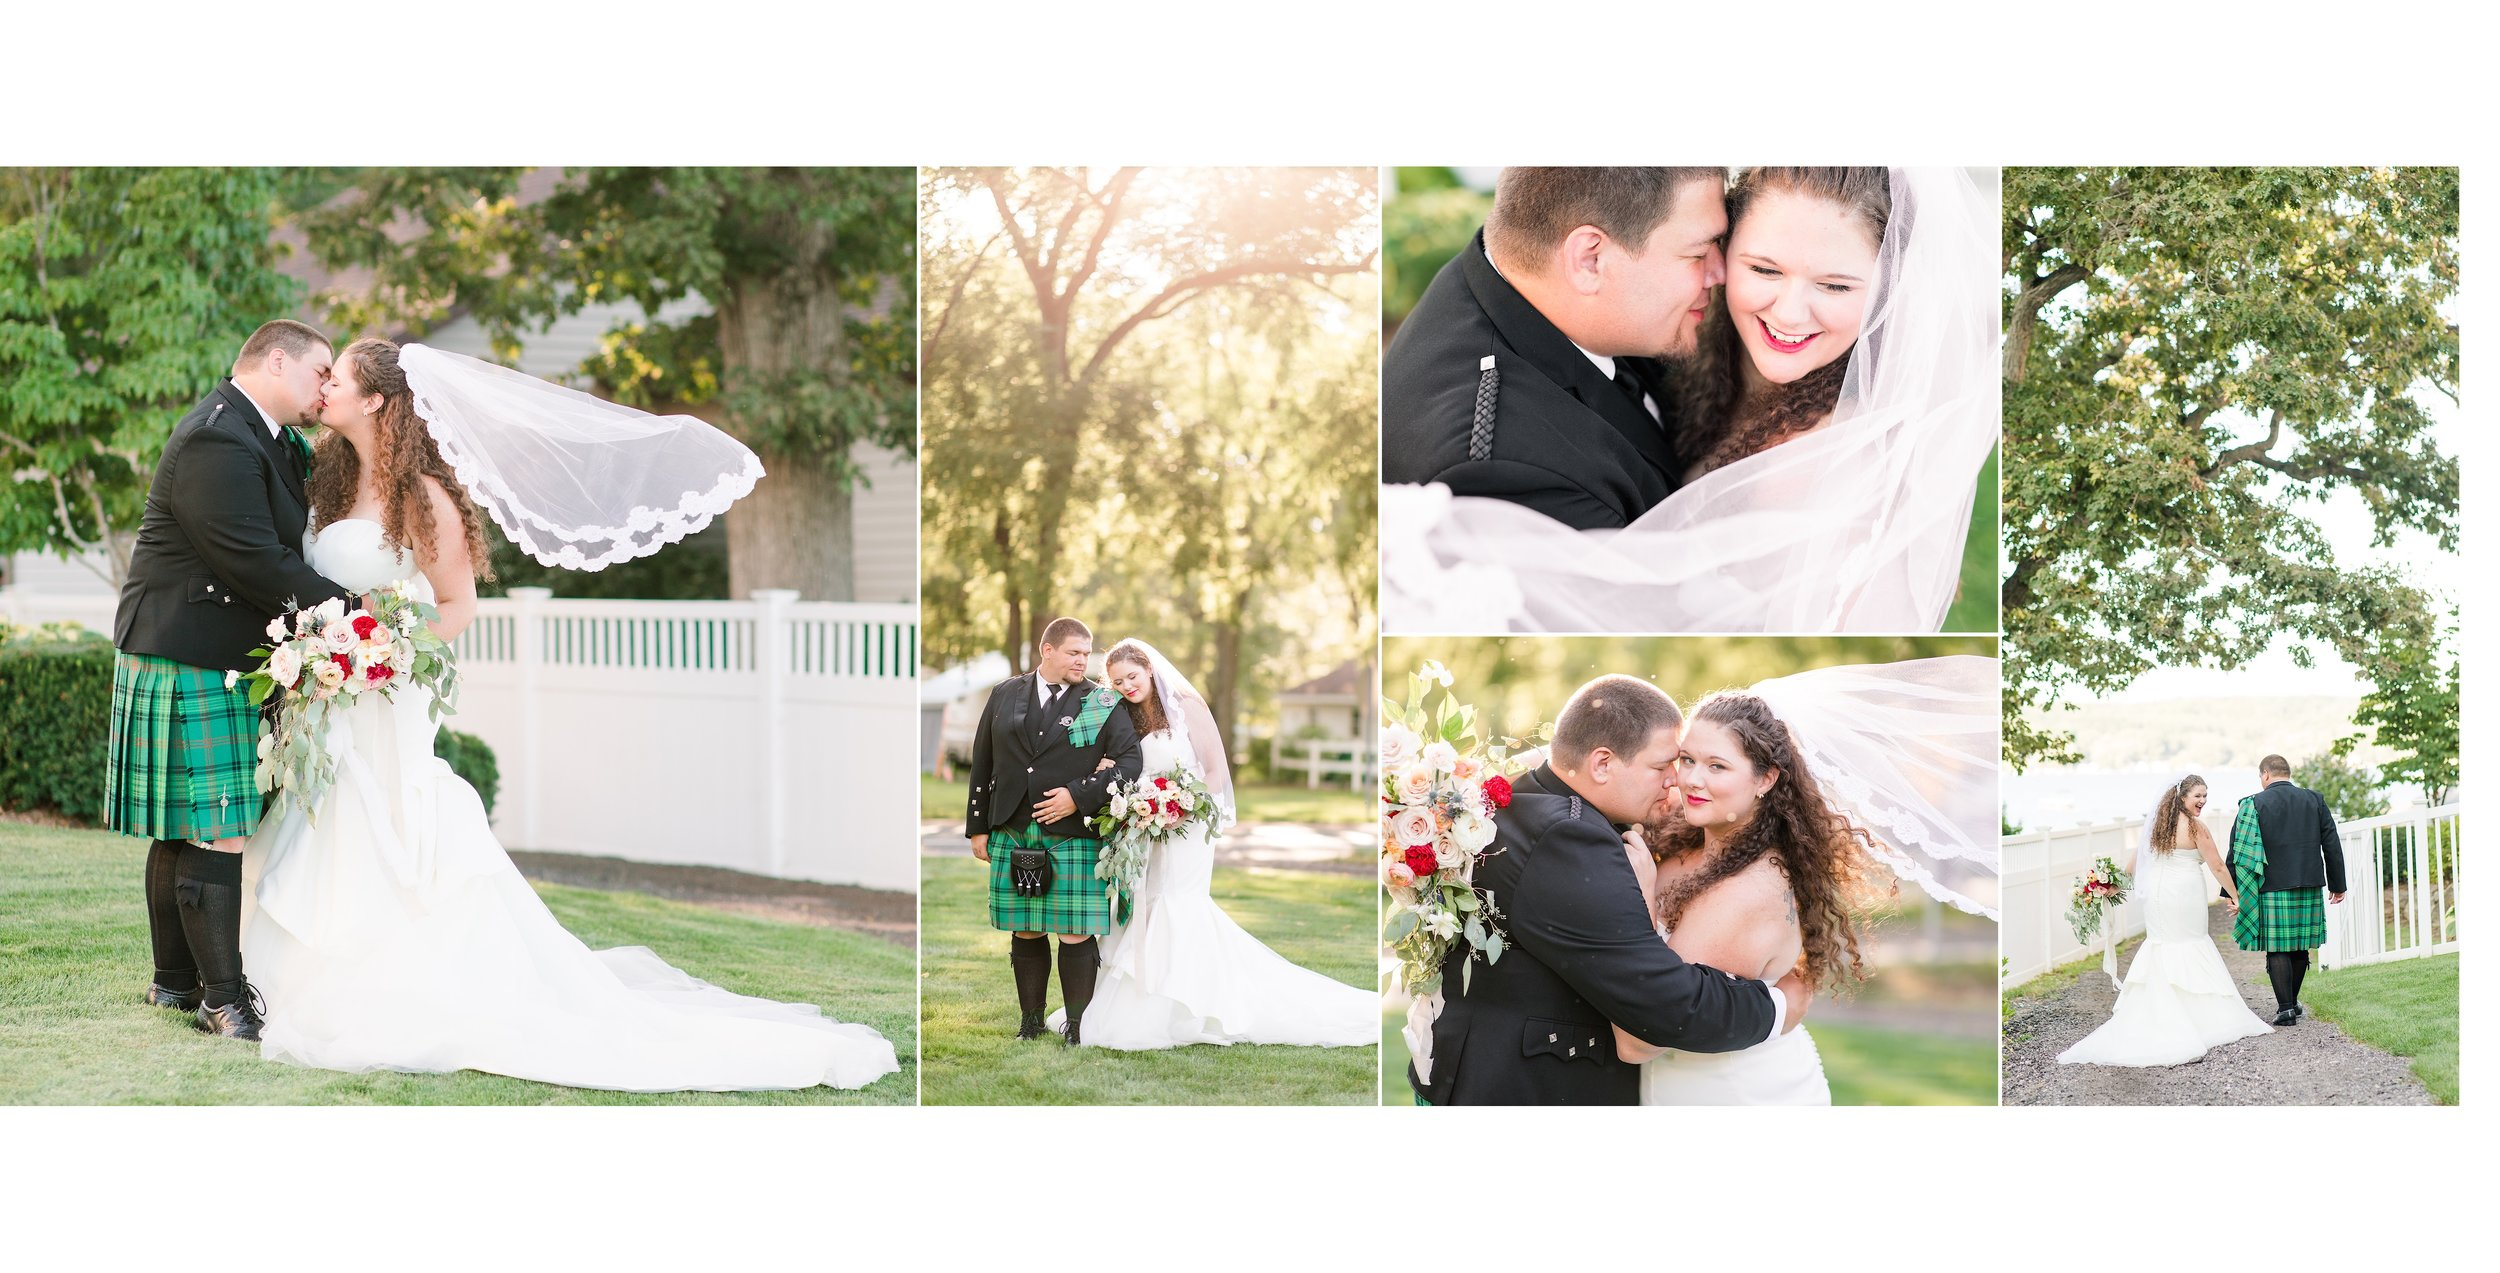 Our_Wedding_Album_12x12_-_30_pages_31.jpg